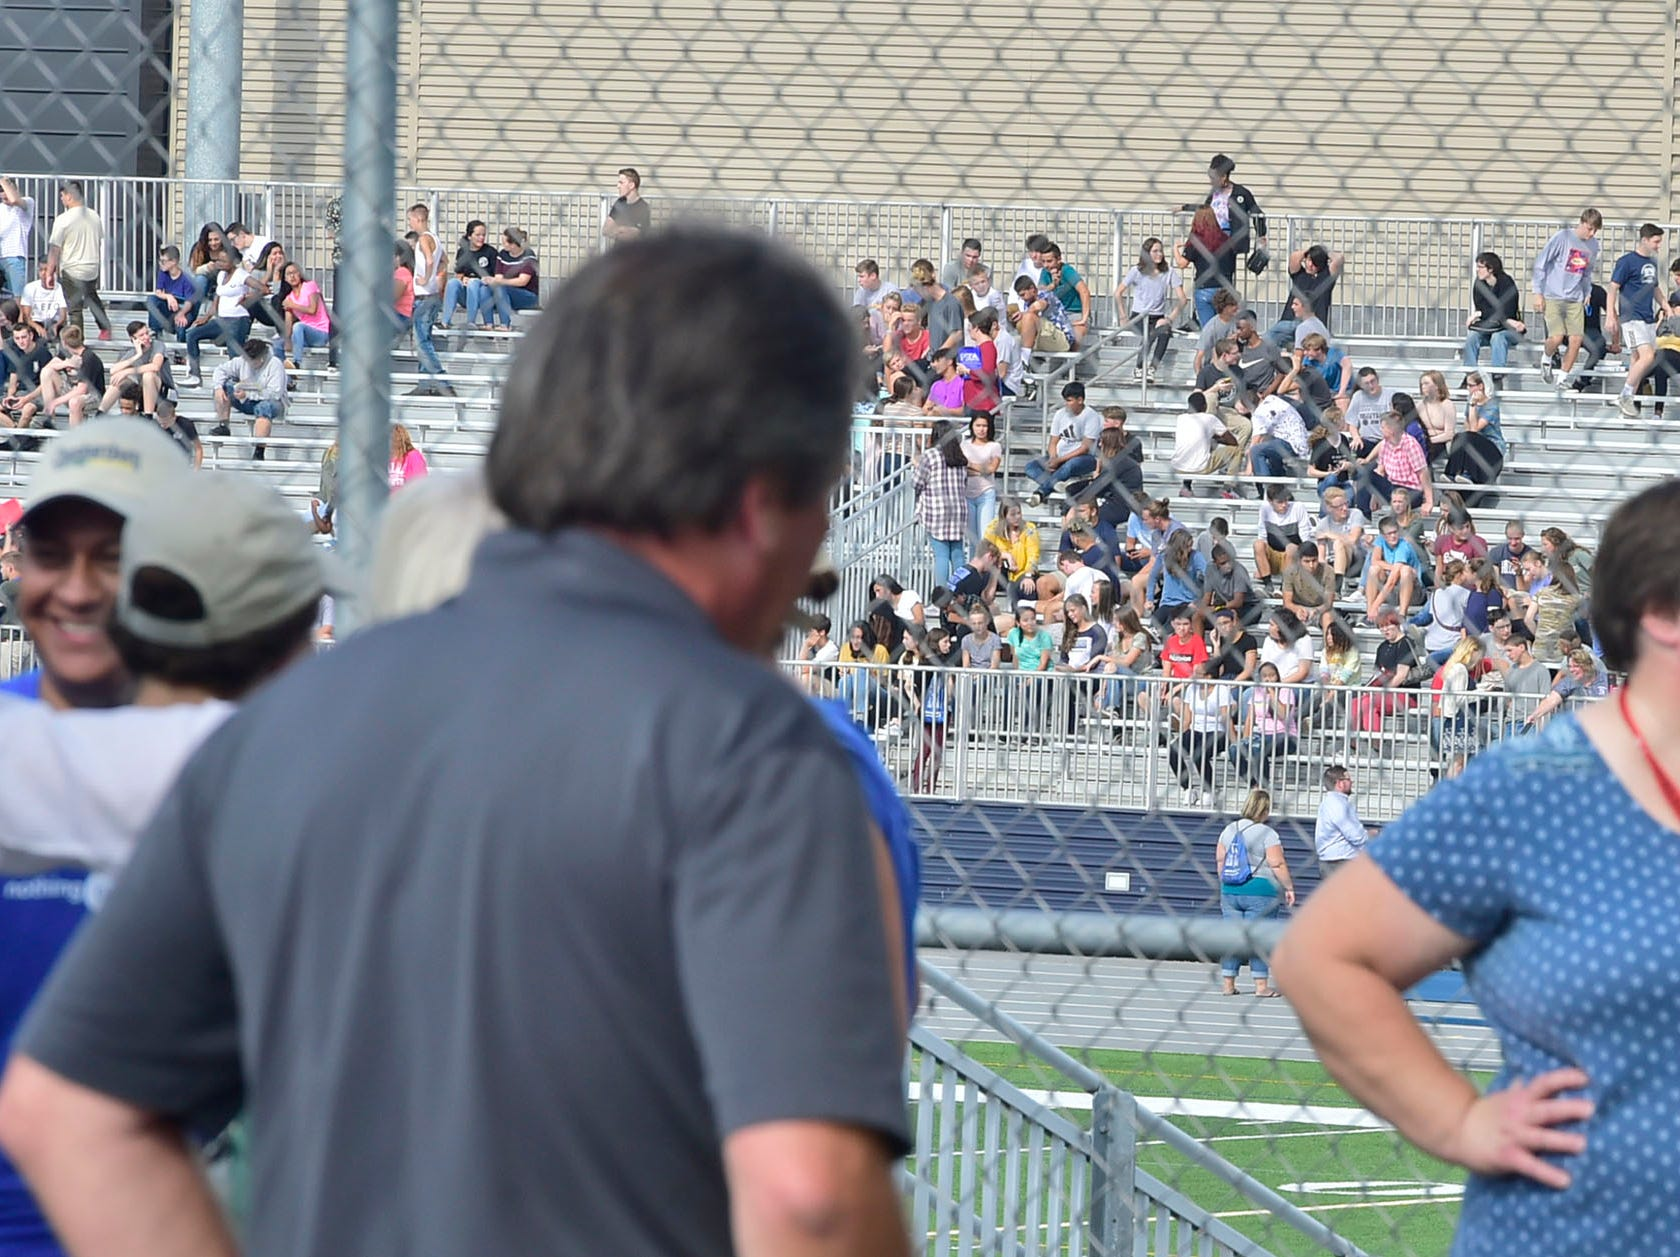 Faculty and students waited in Trojan Stadium after being evacuted. Chambersburg Area Senior High School students were evacuated Thursday morning, August 30, 2018 after a battery ignited a fire in a storage room , sending smoke throughout the building.